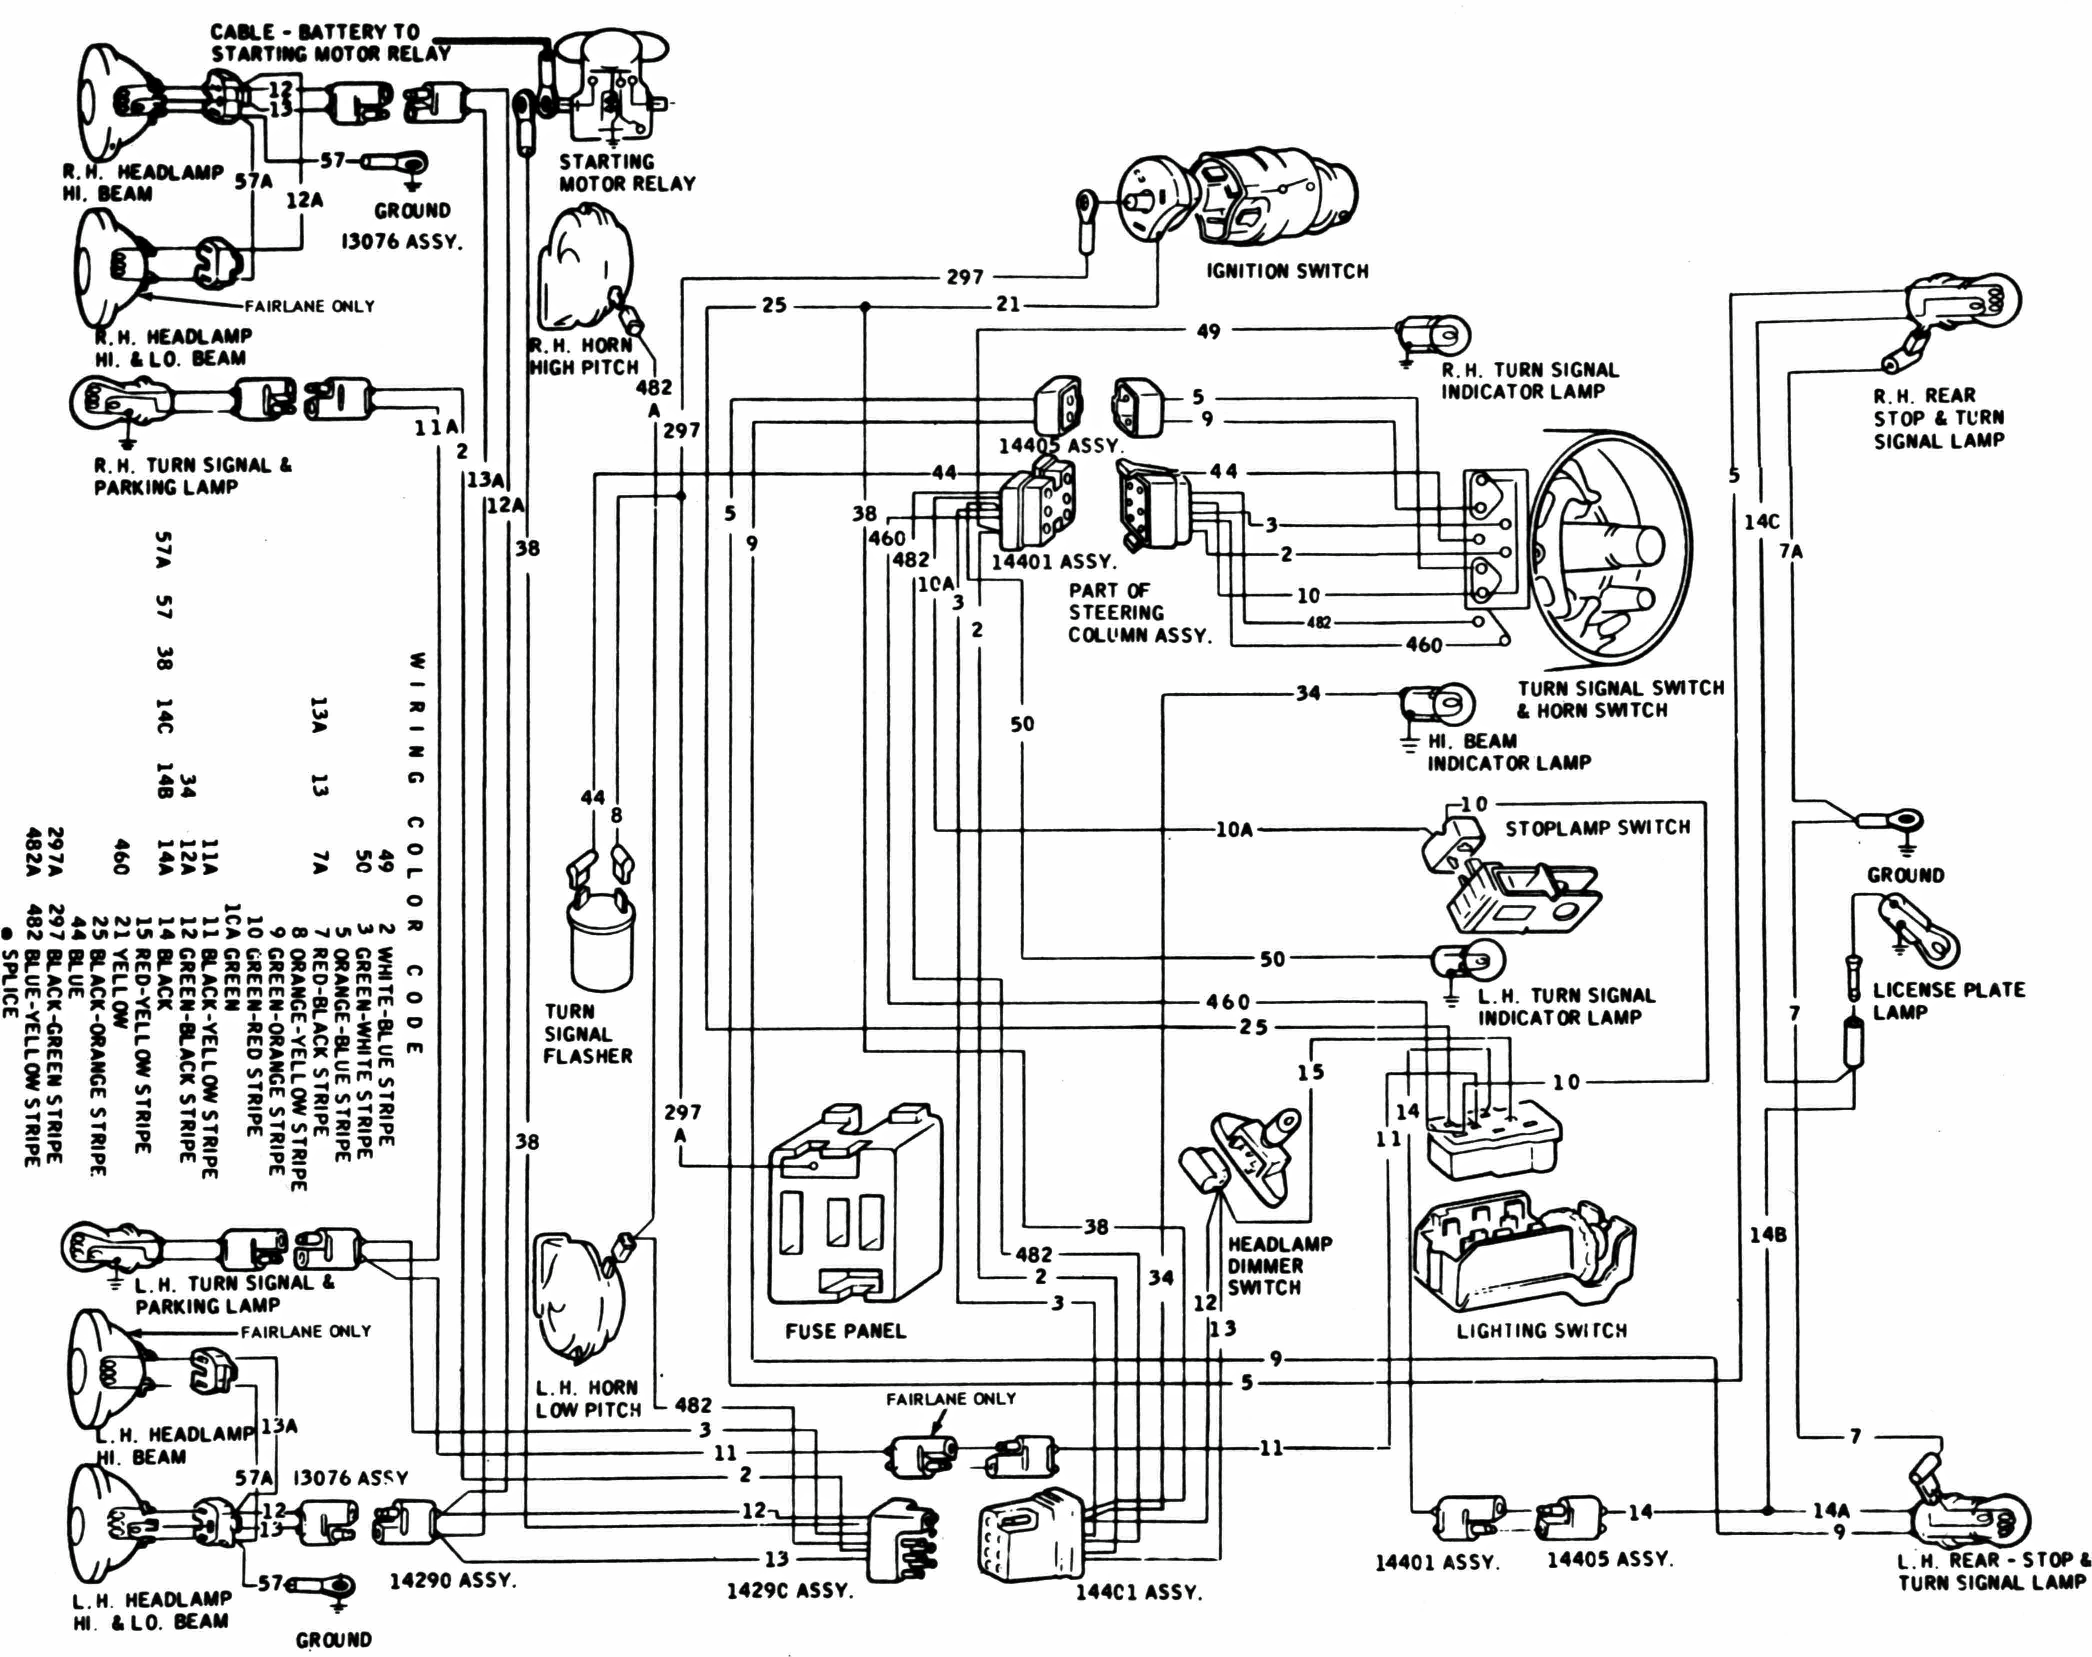 1964 Galaxie Wiring Diagram Trusted Diagrams 1969 Vw Bug Schematic I Have A 67 Fairlane When Press The Brake Pedal One